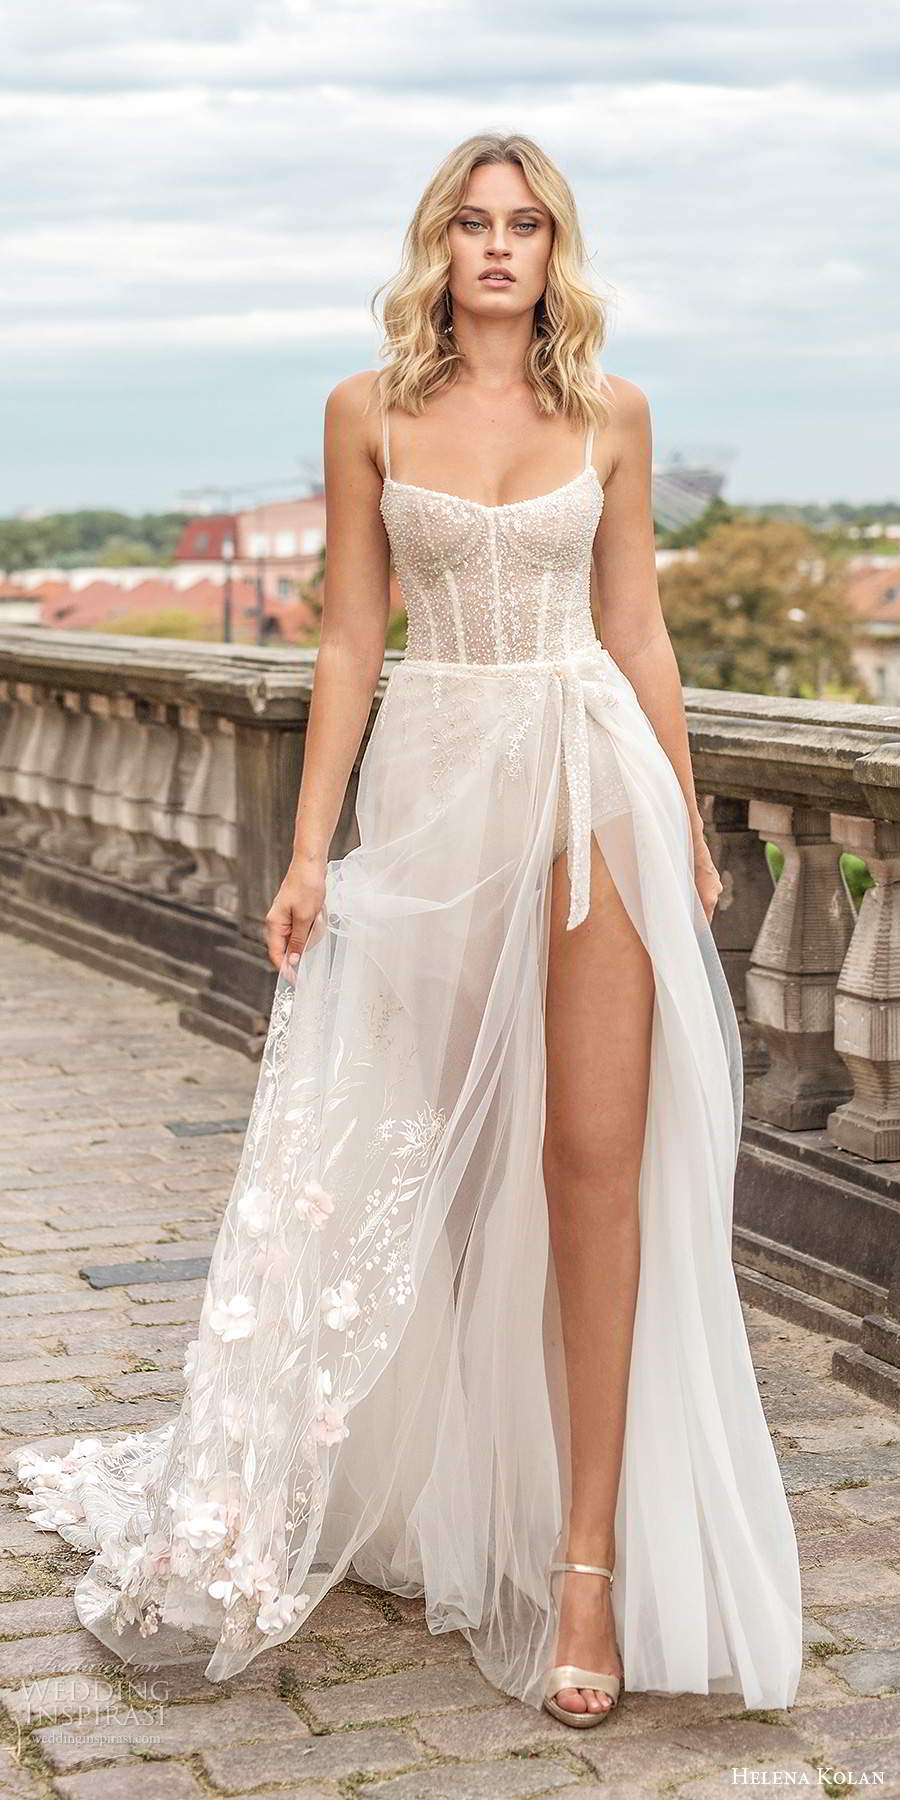 helena kolan 2020 bridal sleeveless thin straps scoop neckline heavily embellished bodice slit skirt sexy a line wedding dress chapel train (2) mv